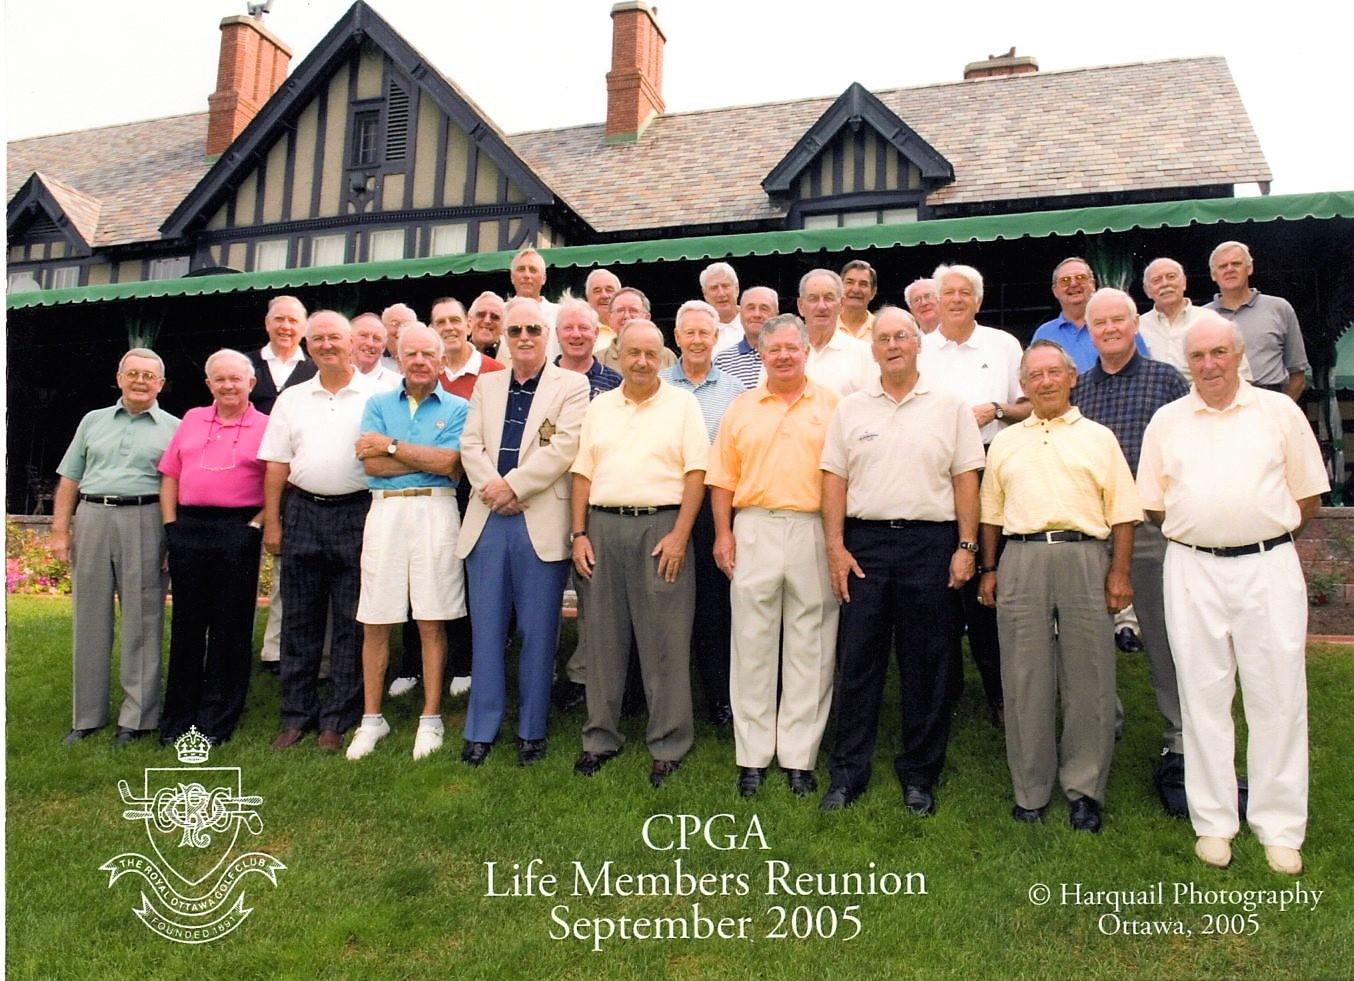 C:\Users\Owner\Pictures\PGA Eddie Dunn Images\CPGA Life Members Reunion, September 2005 at Royal Ottawa - Copy.jpg